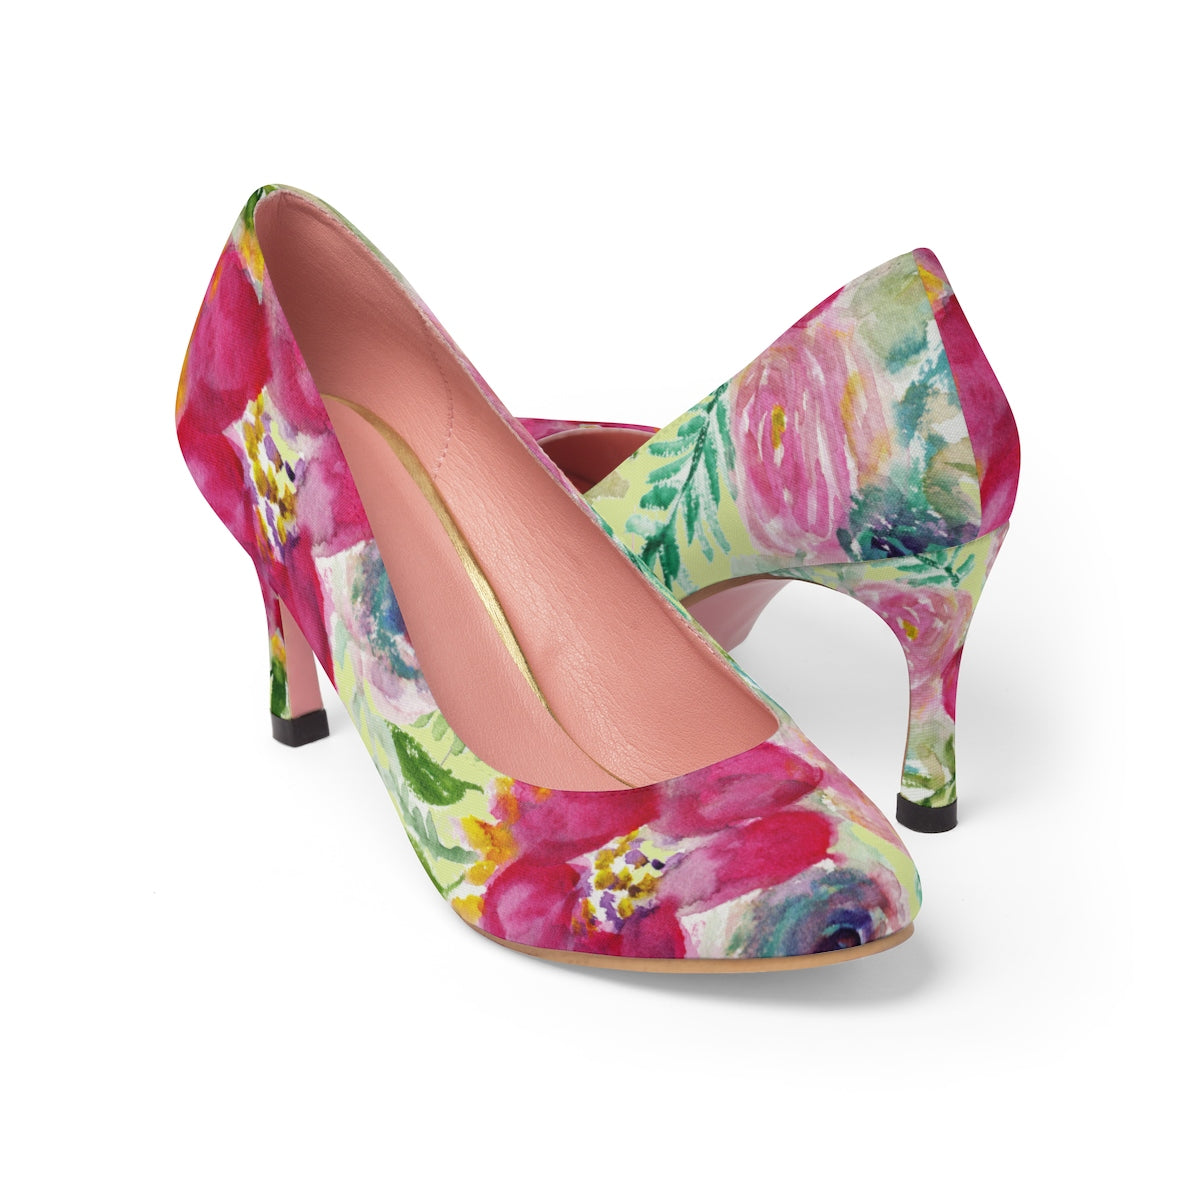 "Charming Rose Floral Print Bridal Style Women's Designer 3"" High Heels Shoes-3 inch Heels-US 7-Heidi Kimura Art LLC"